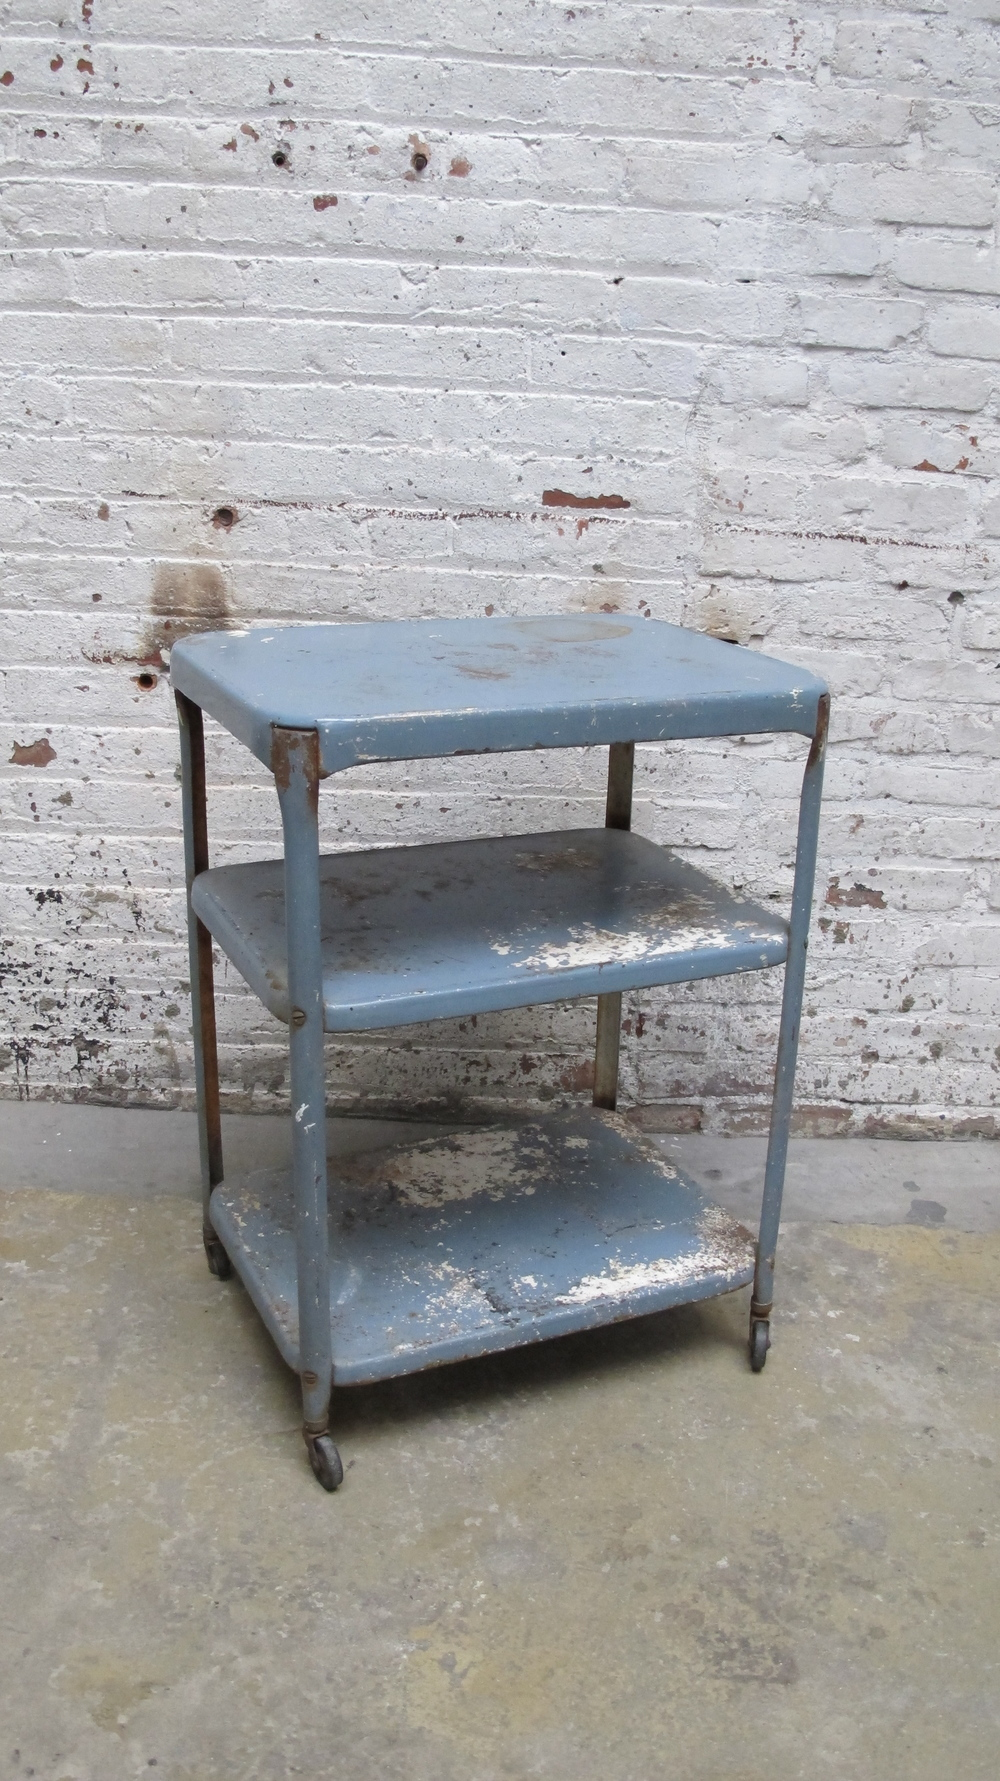 Blue 3-Tier Rolling Cart $45